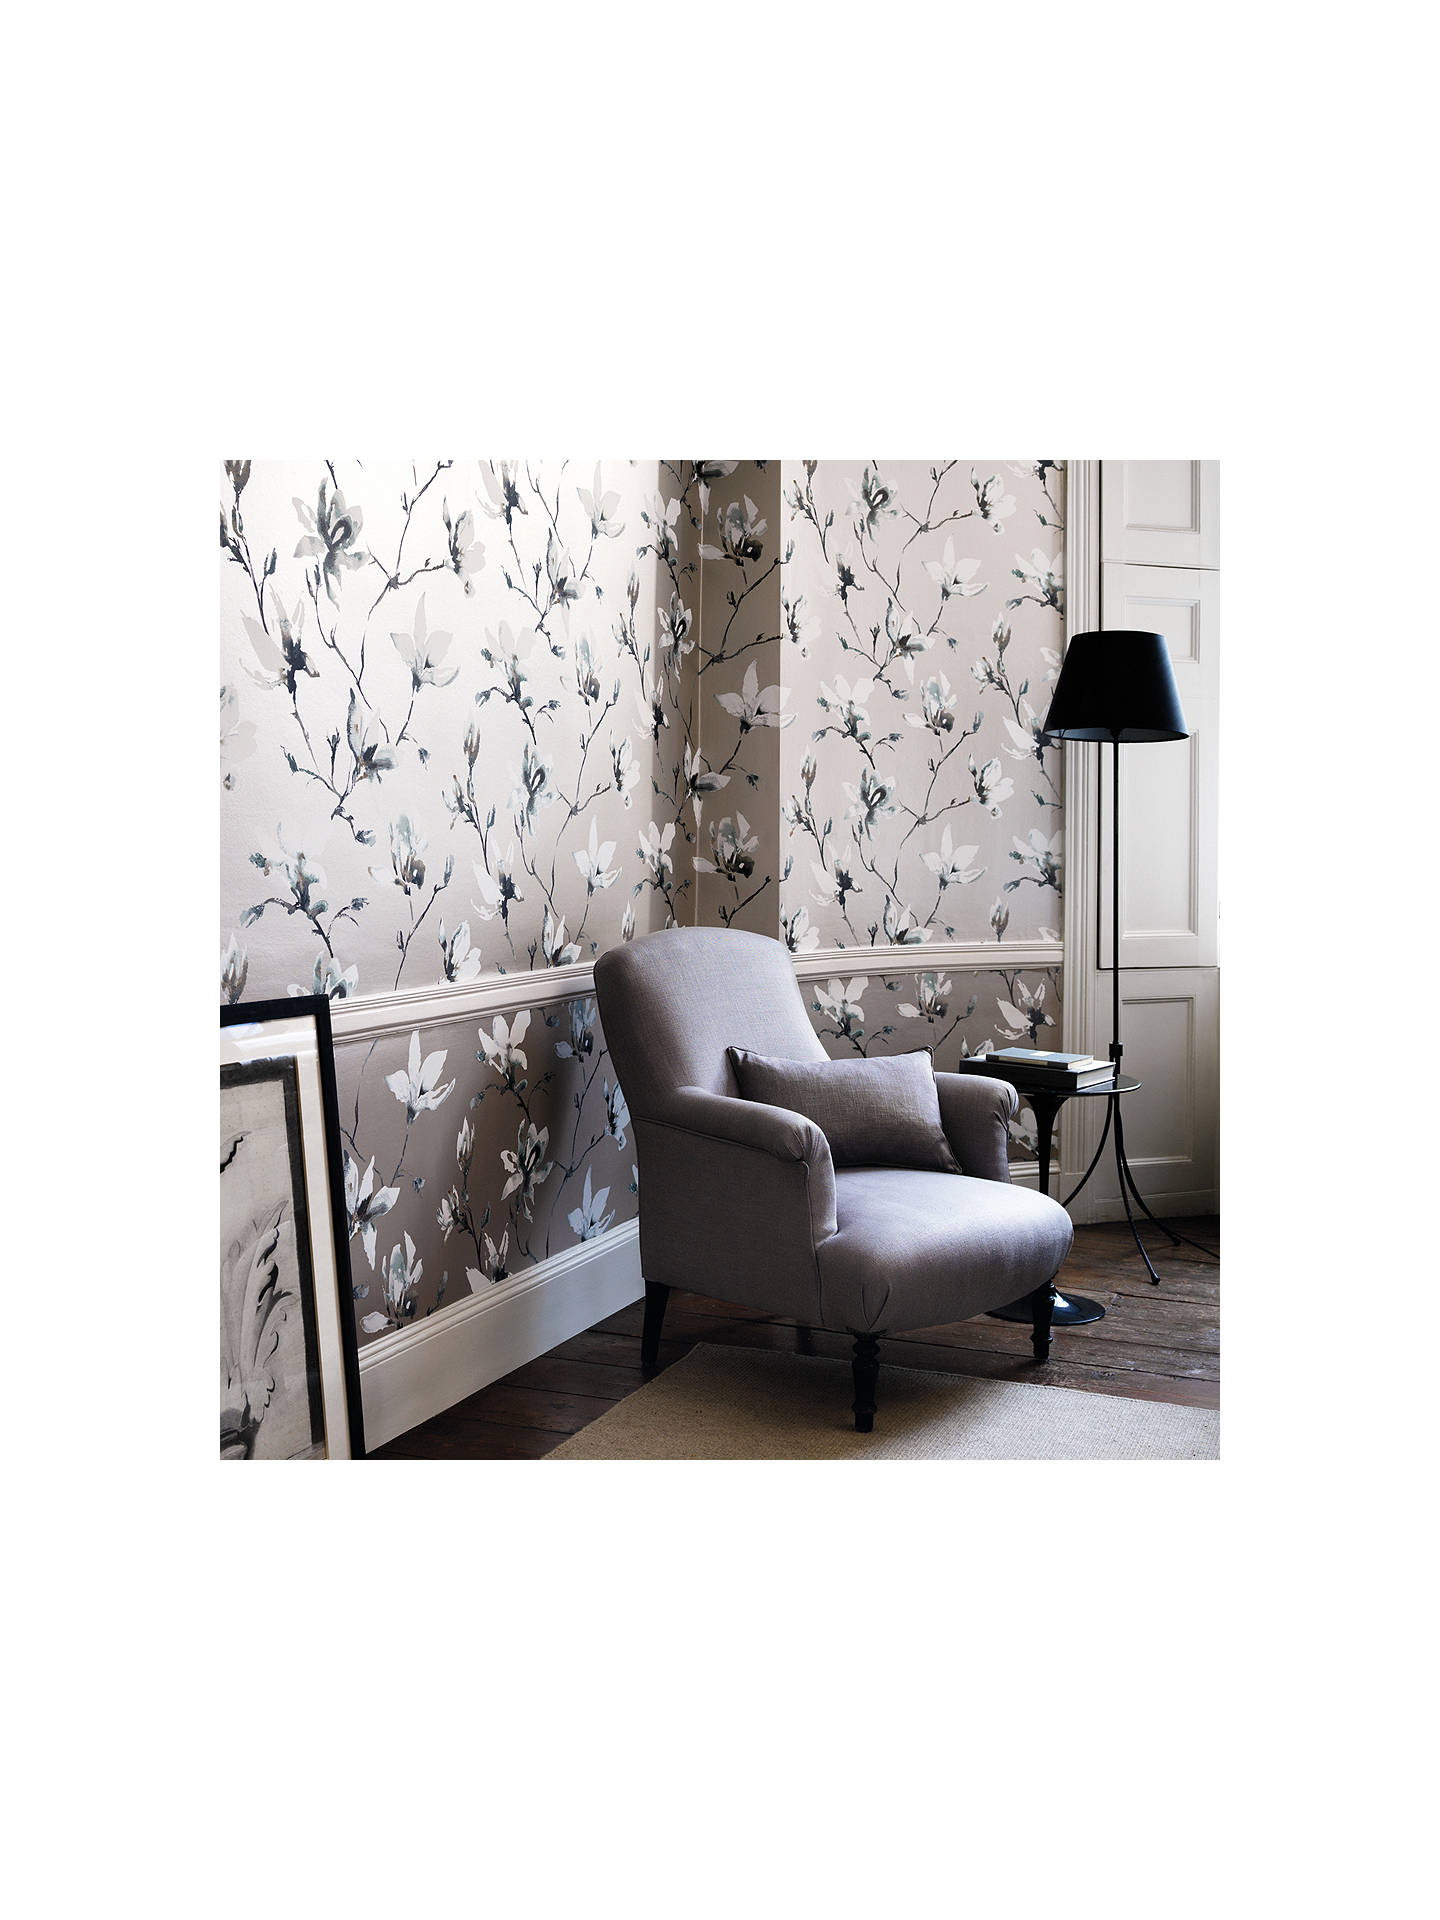 Buy Romo Saphira Paste the Wall Wallpaper, Nickel W405/02 Online at johnlewis.com